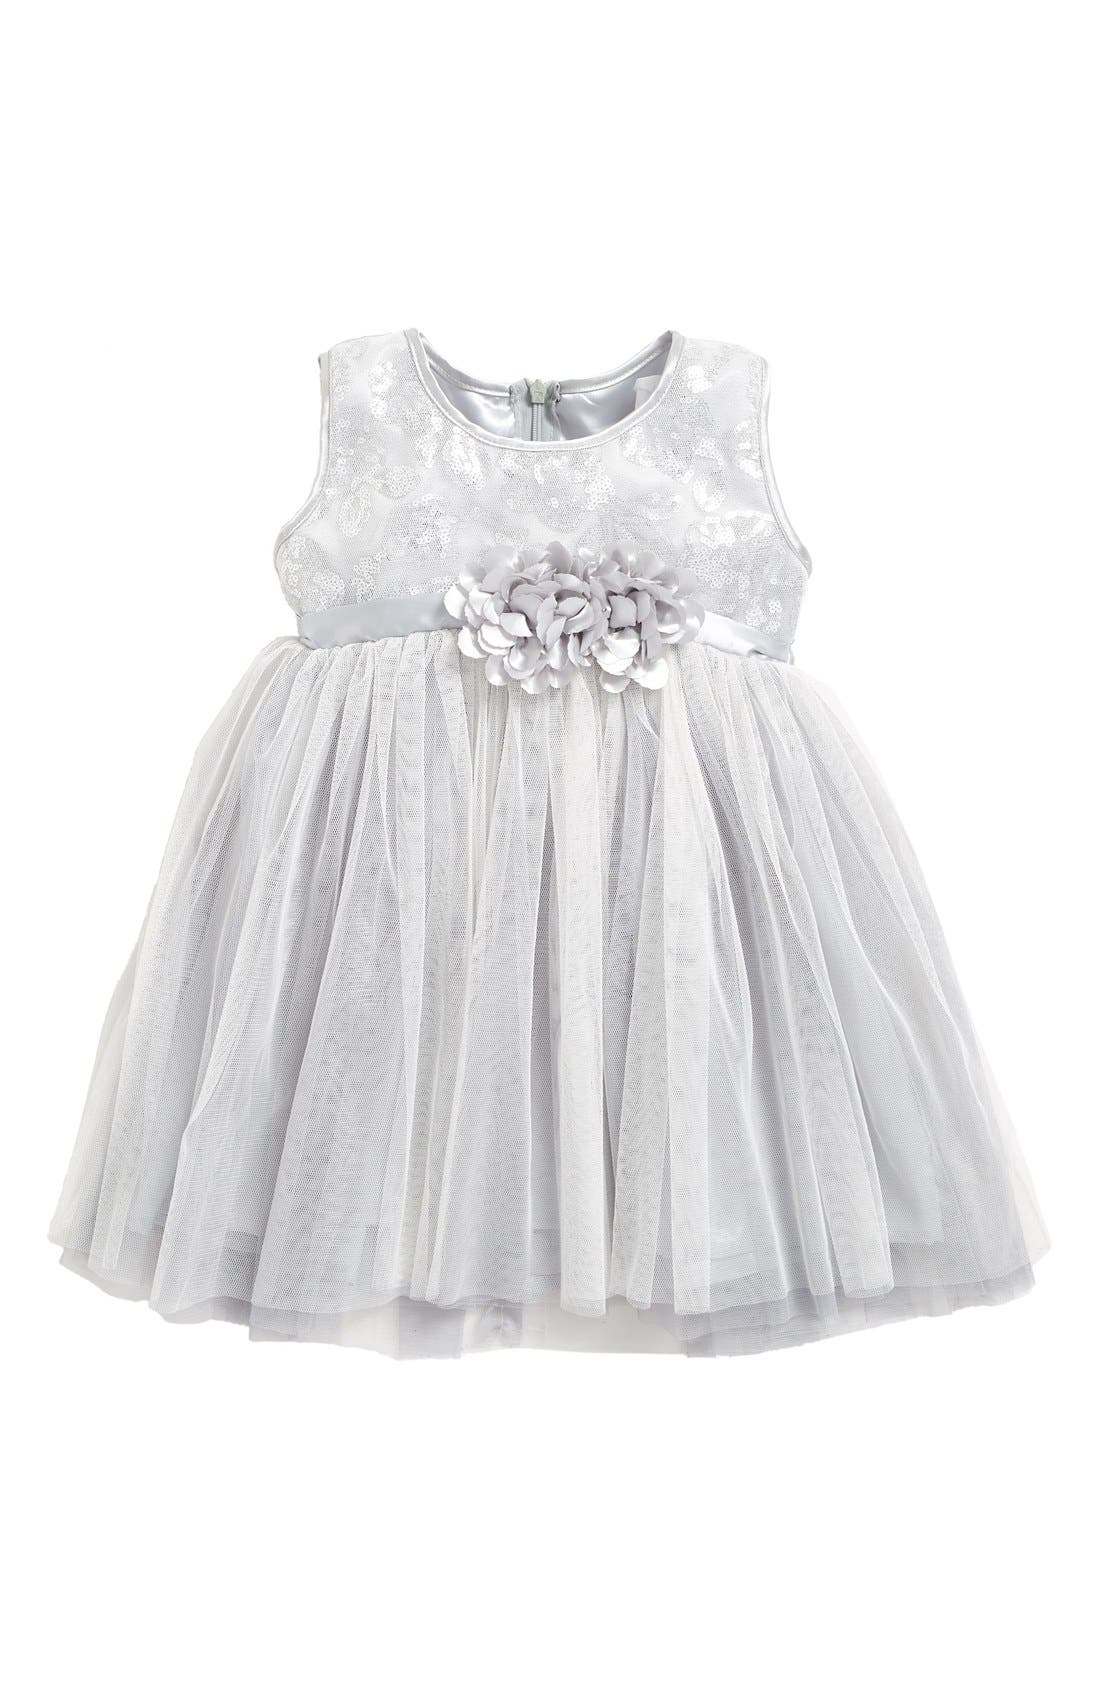 Alternate Image 1 Selected - Popatu Empire Waist Tulle Dress (Baby Girls)